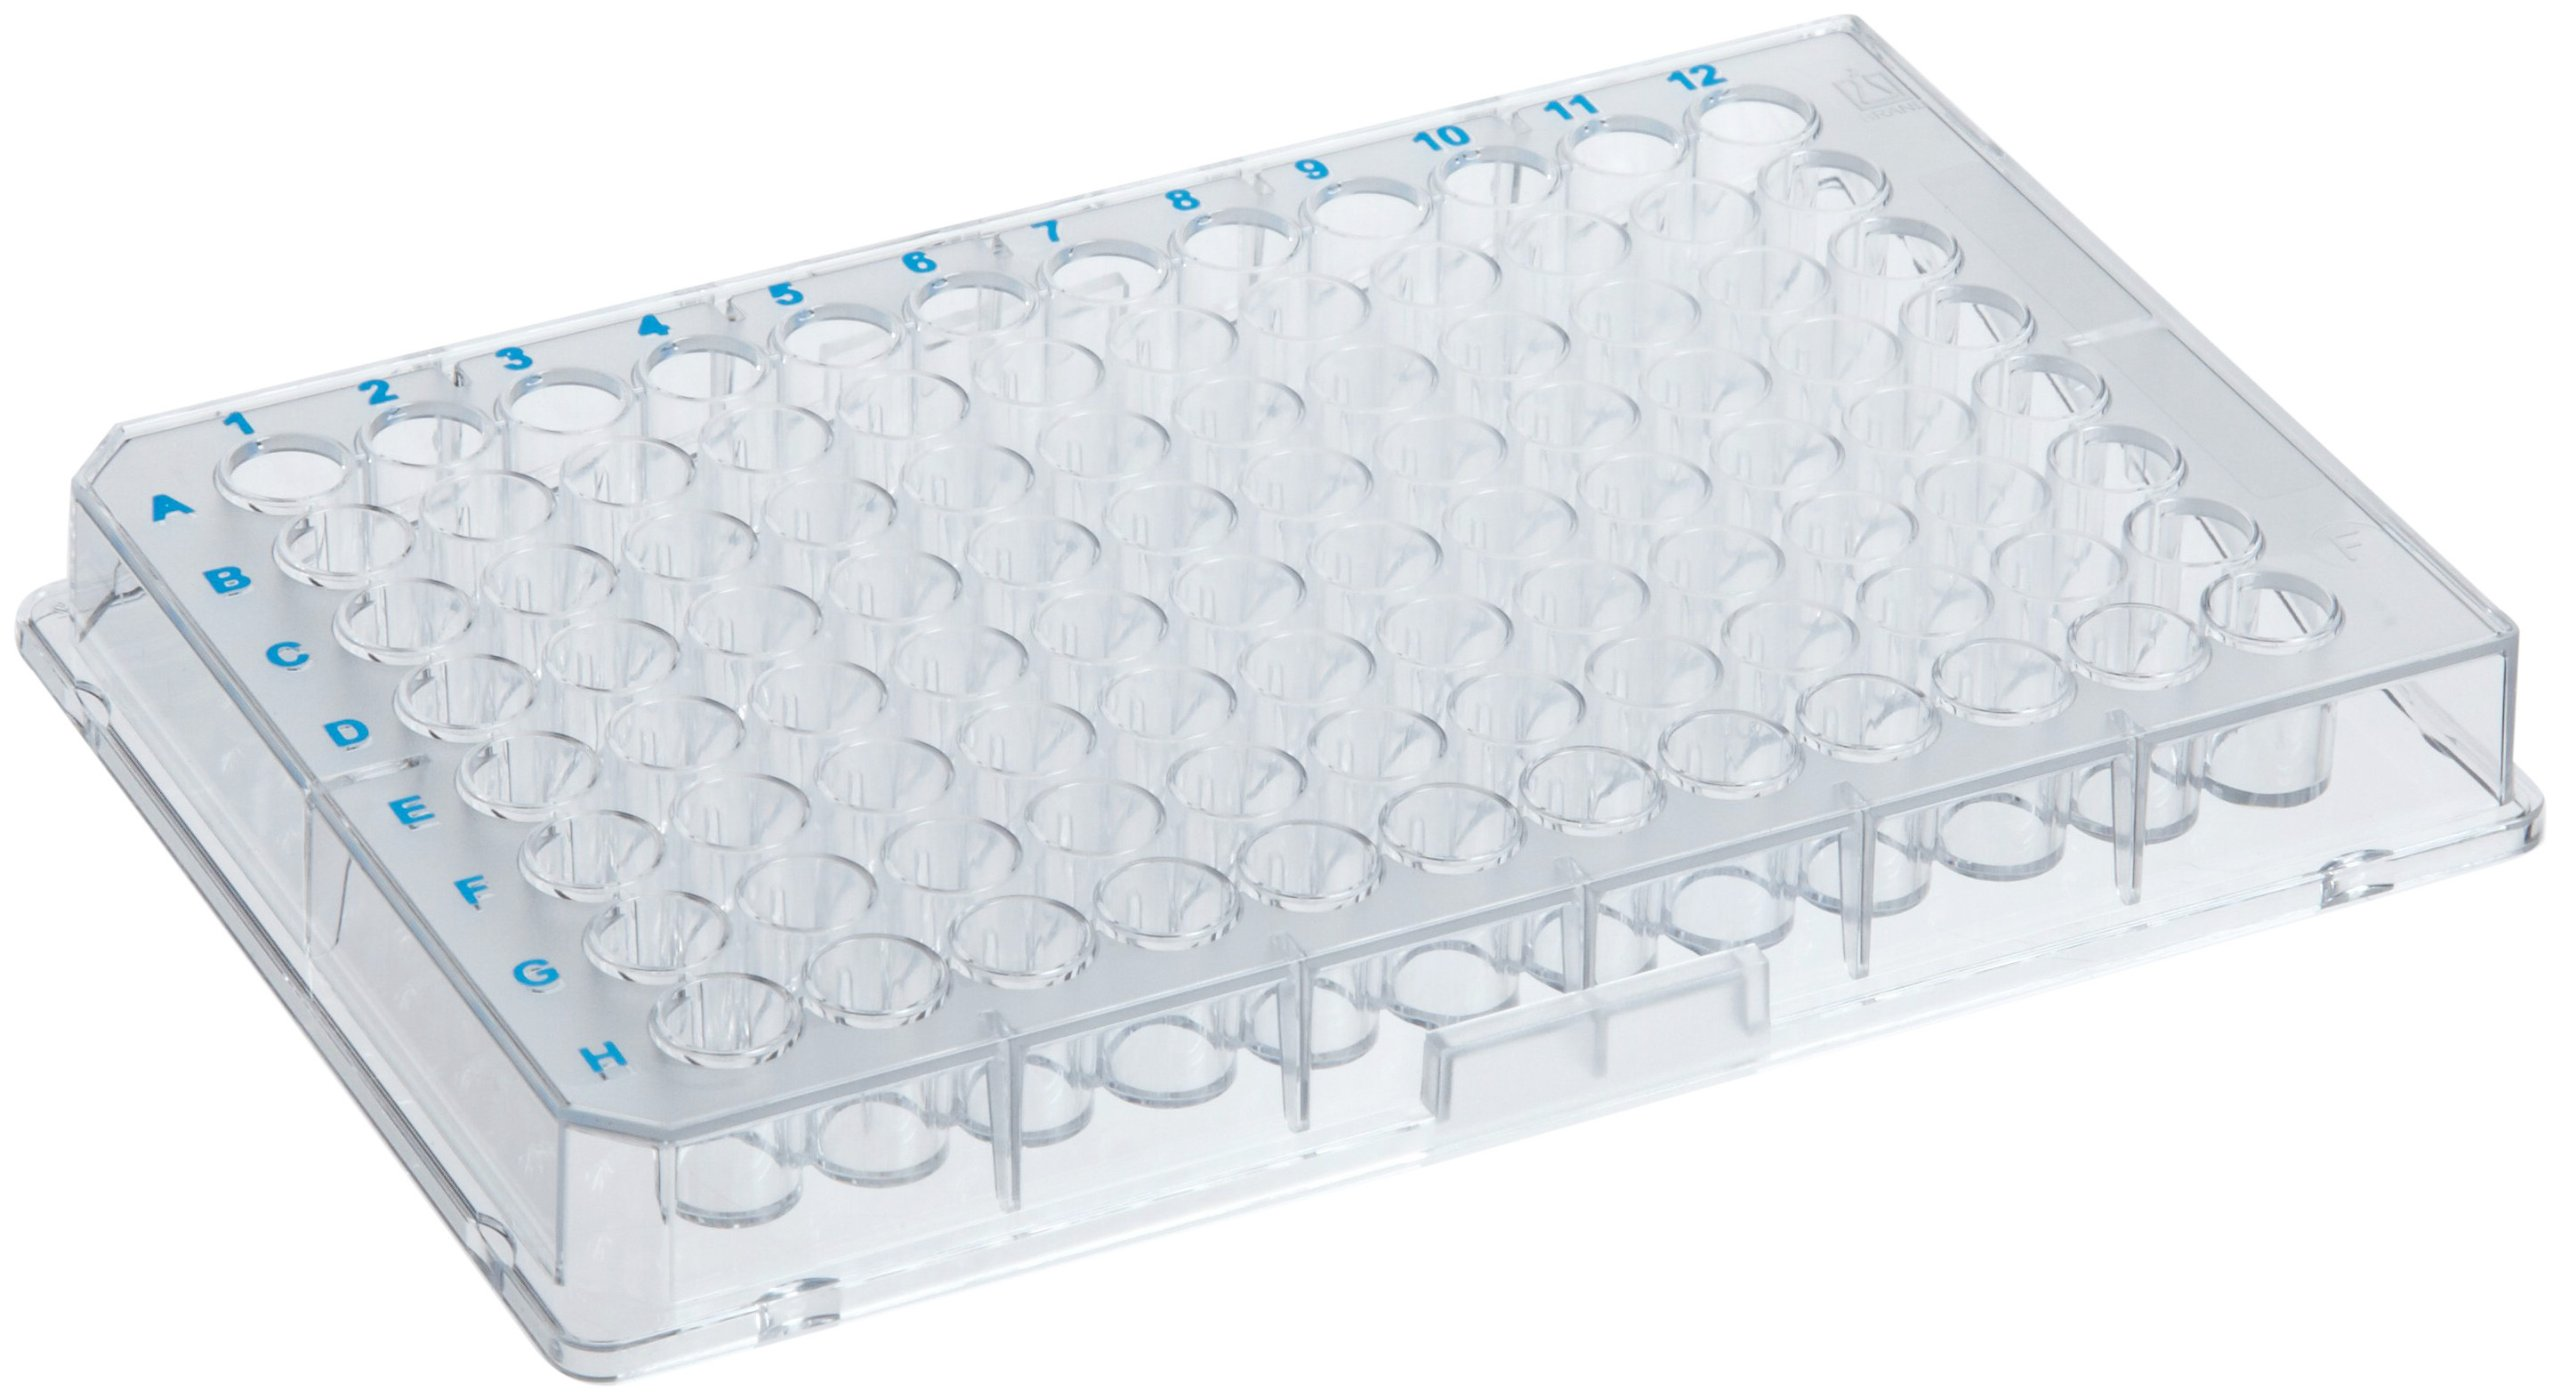 BRANDplates hydroGrade Immunoassay Microplates 96-well plate, hydroGrade, Clear, Non-Sterile, C Bottom (Pack of 100)